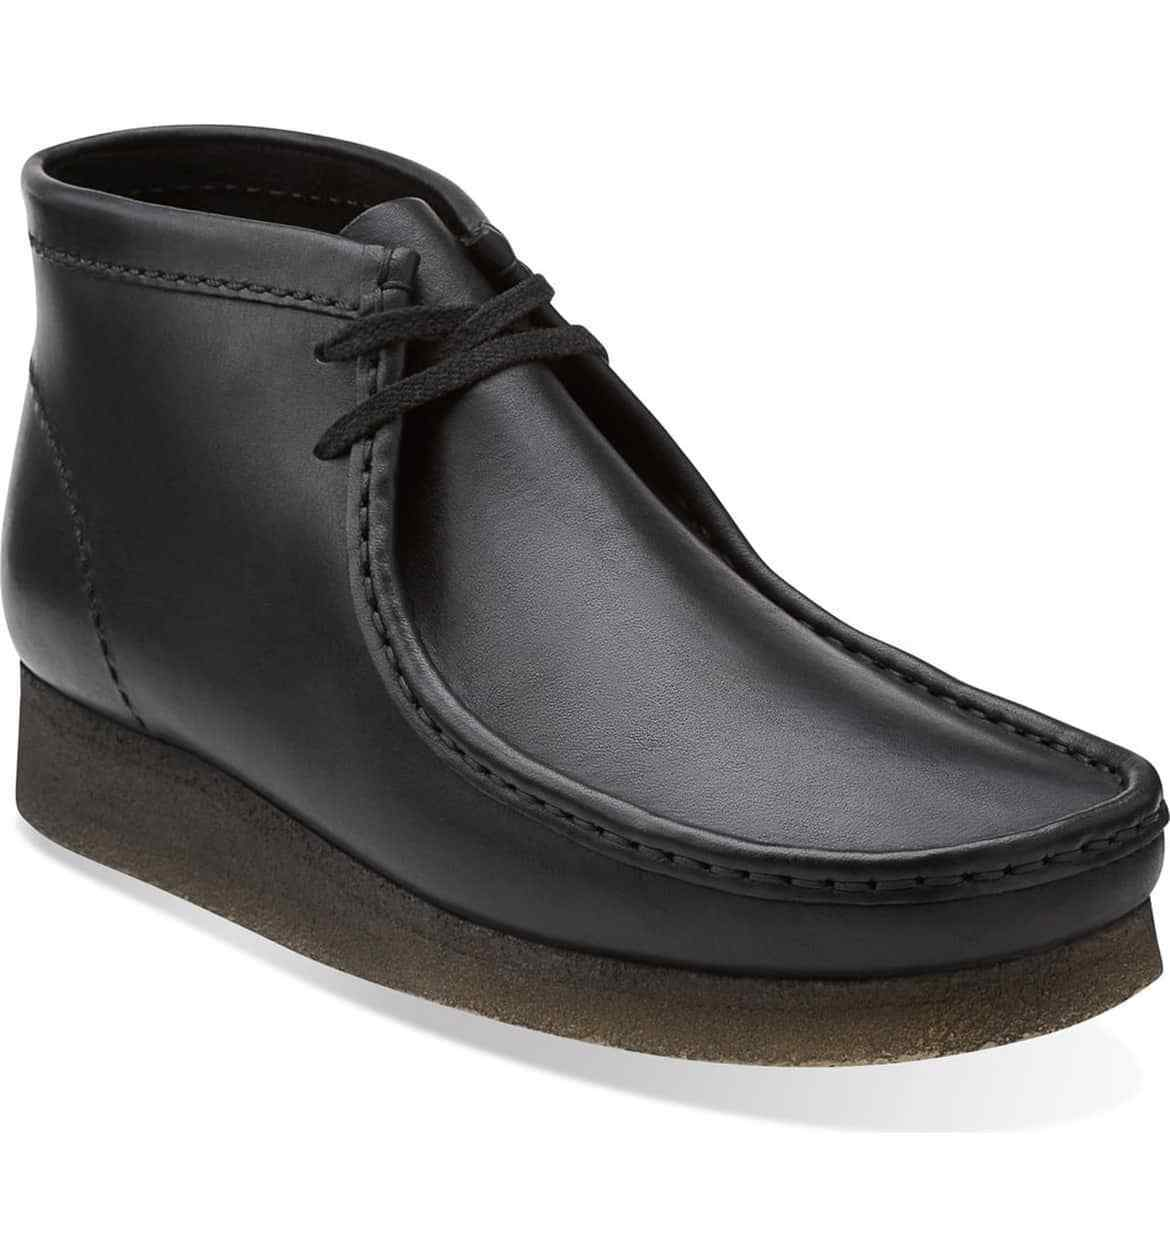 03666-BLK LTHR CLARKS WALLABEE BOOT